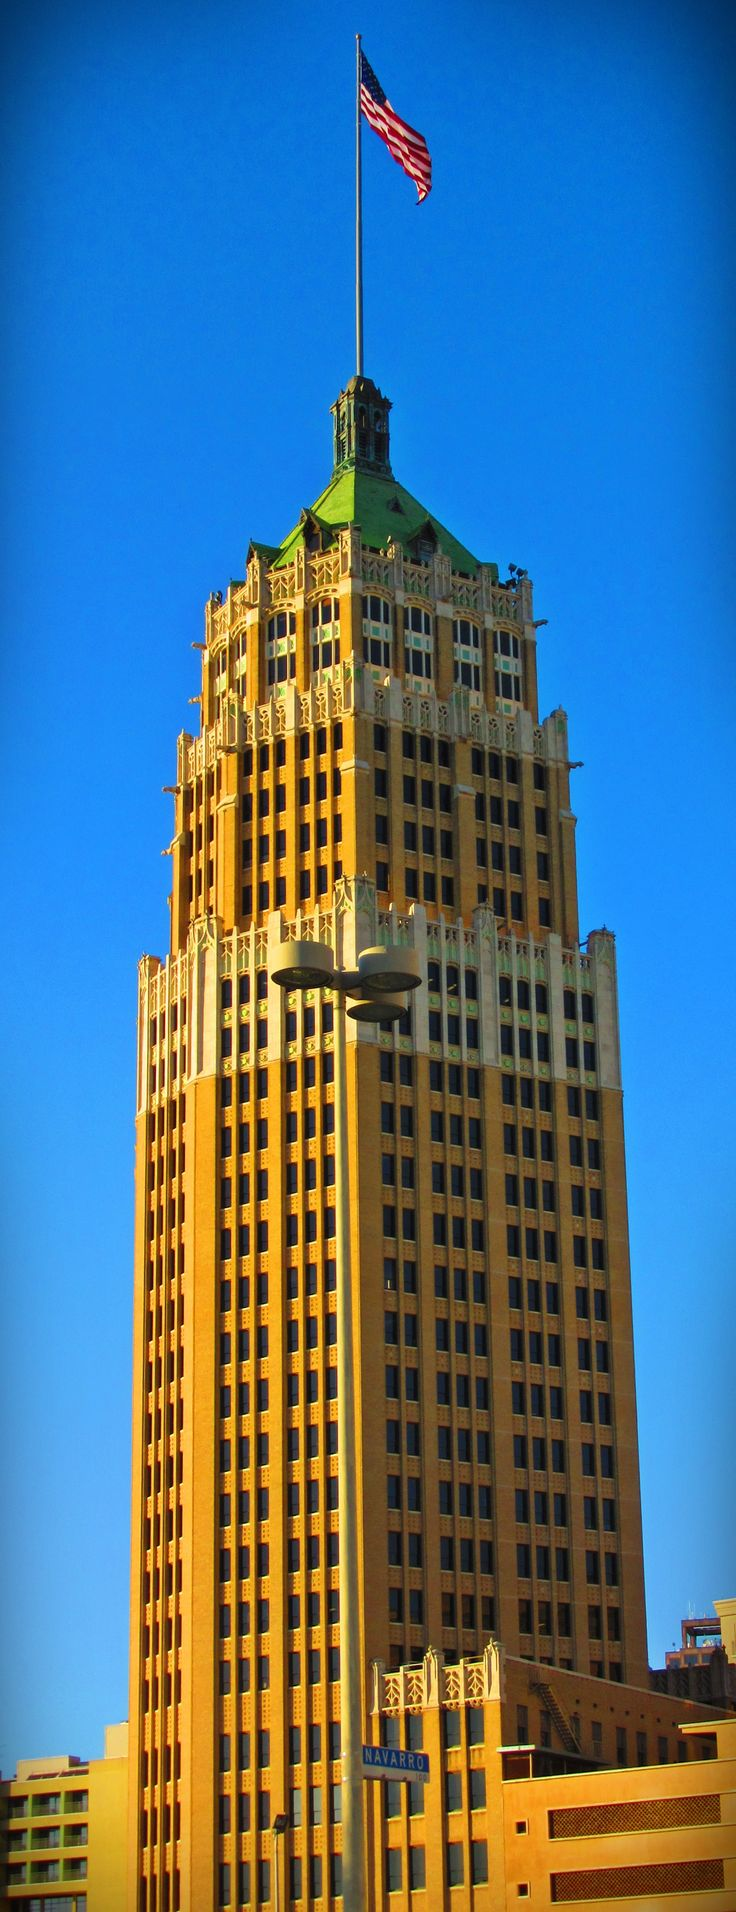 The iconic Tower Life Building - great Art Deco architecture in San Antonio, Texas